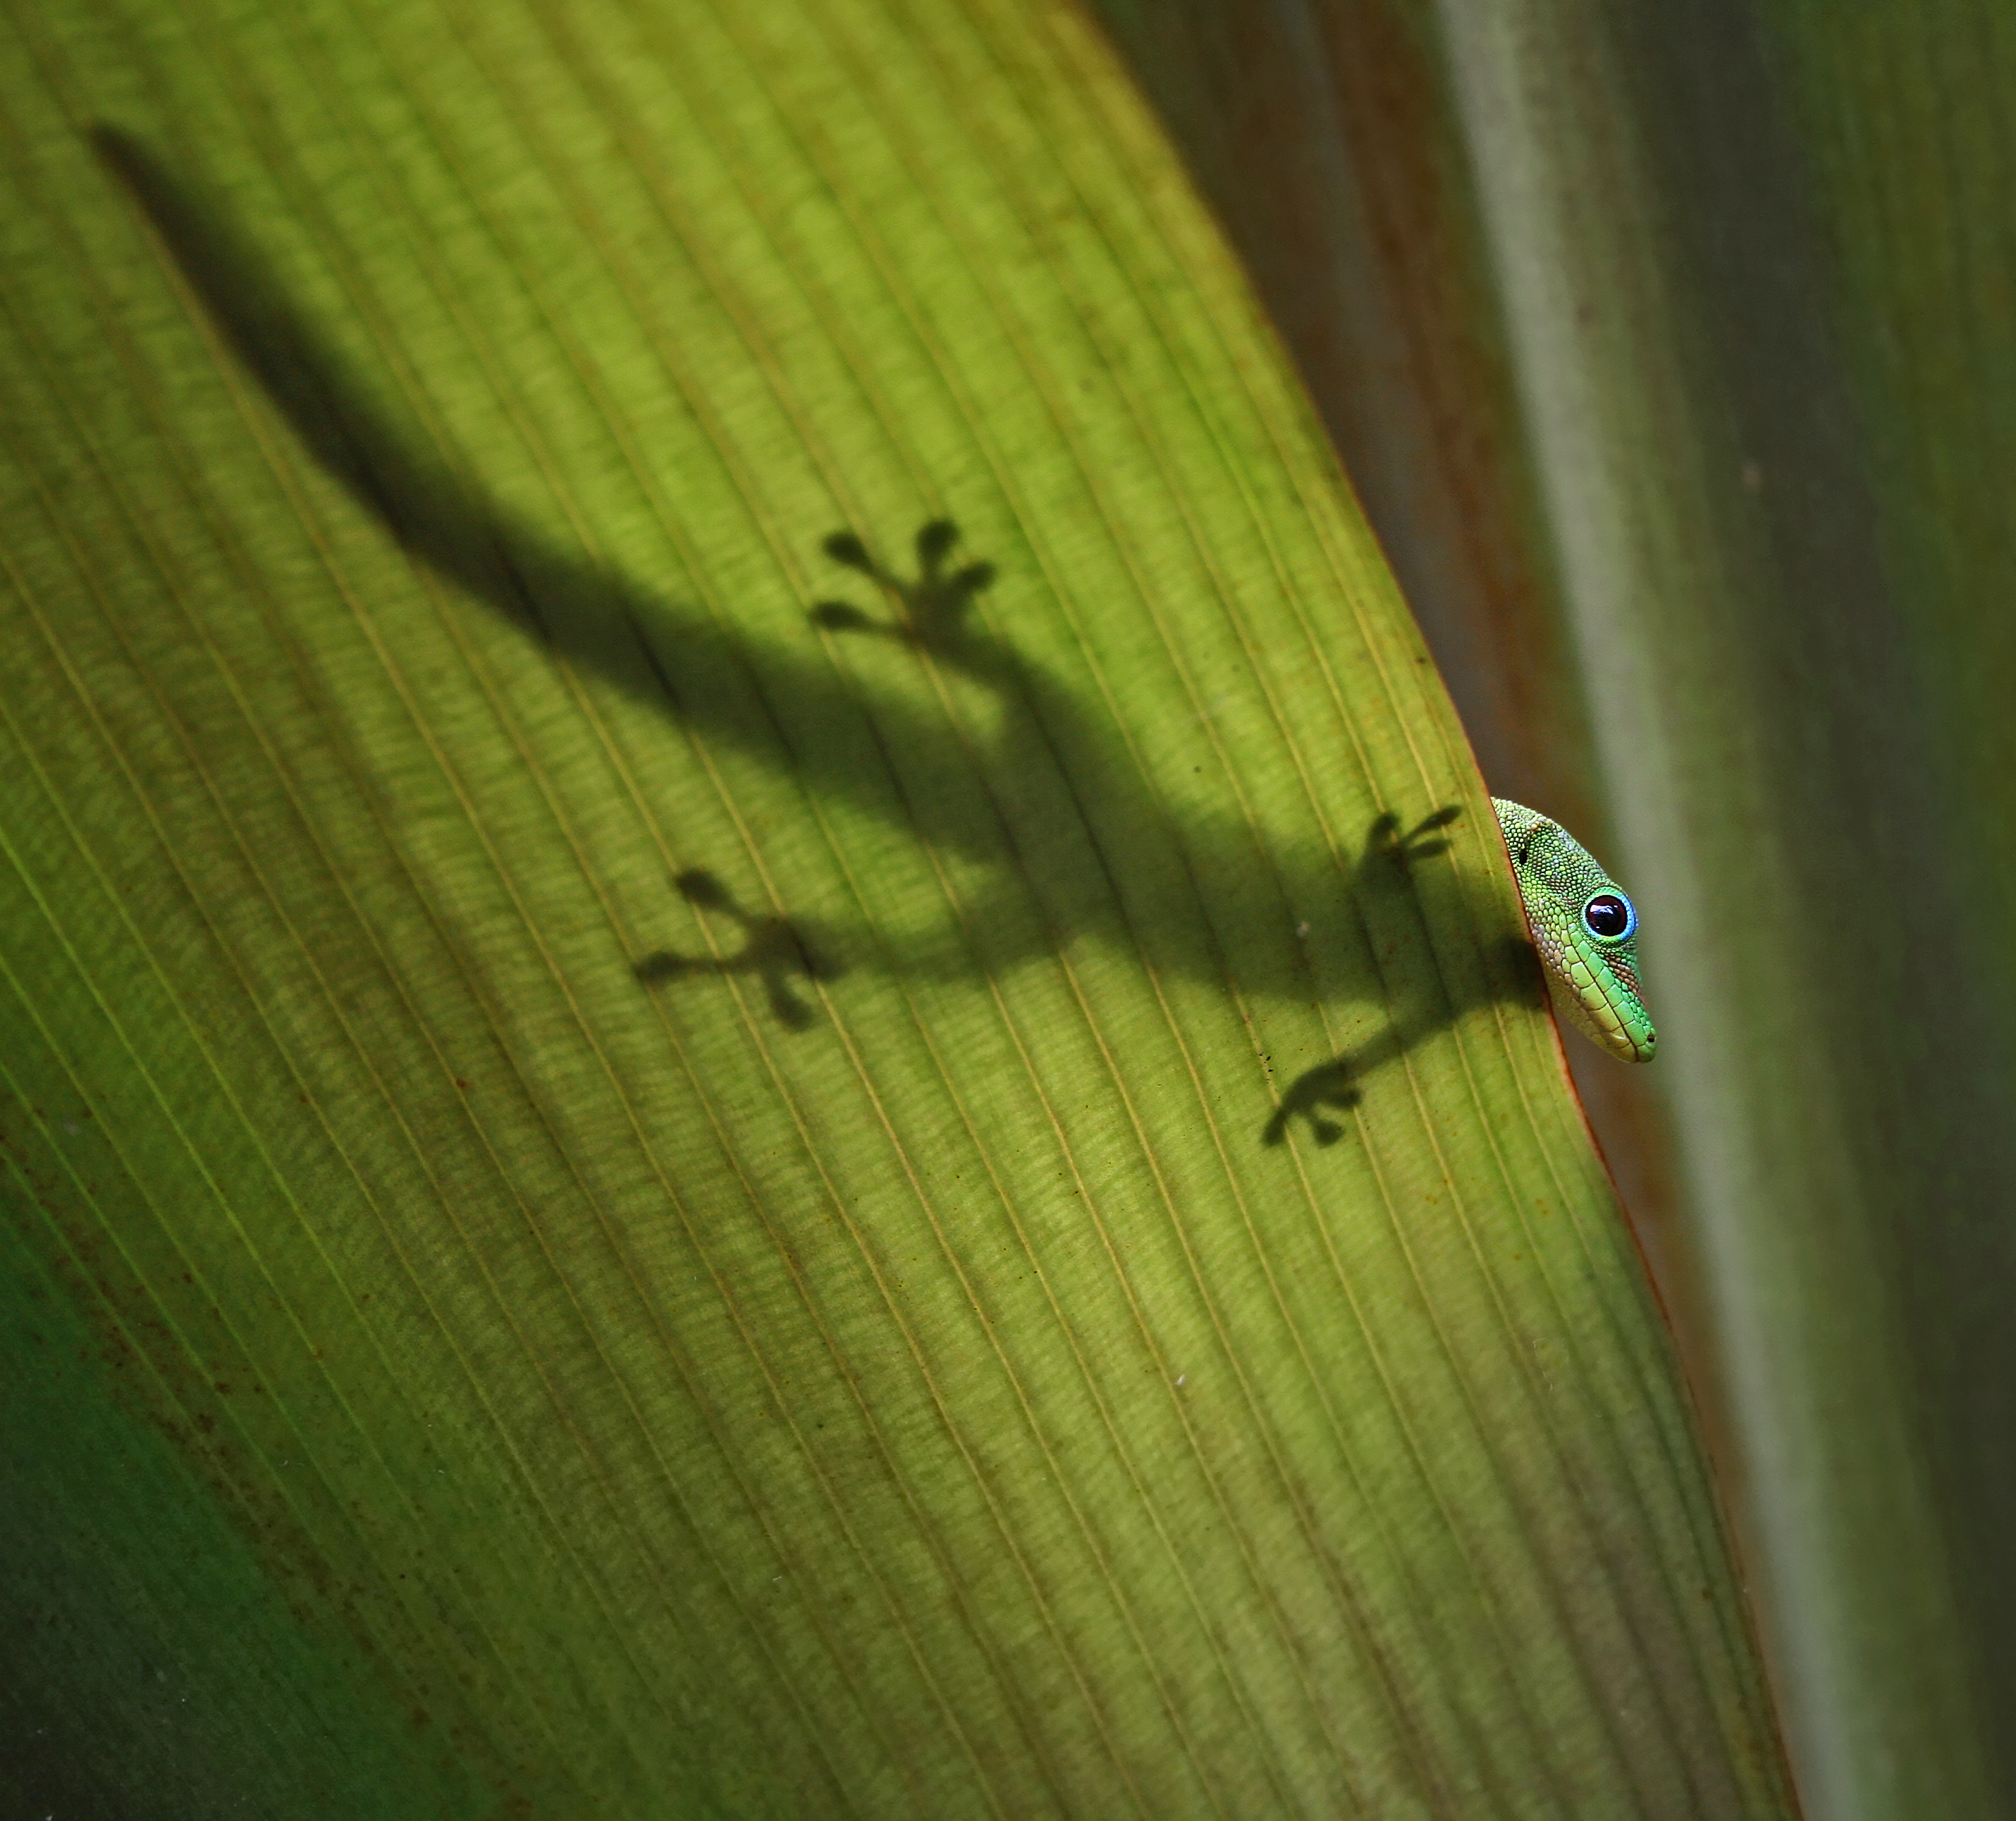 File:Gold dust day gecko.JPG  Wikipedia